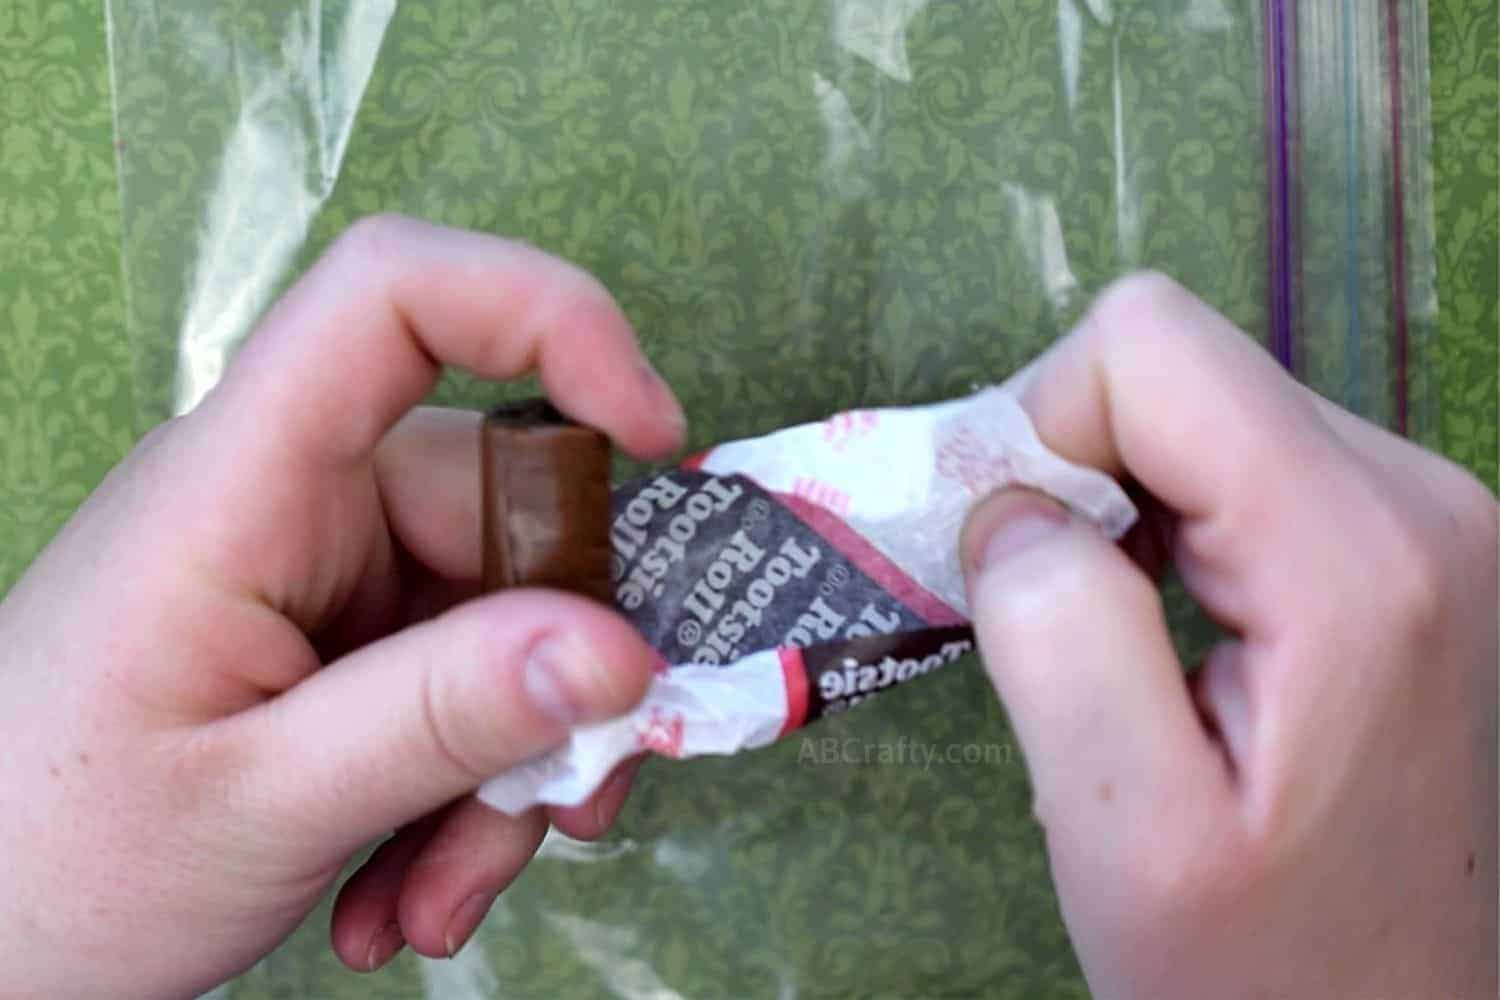 Unwrapping a tootsie roll